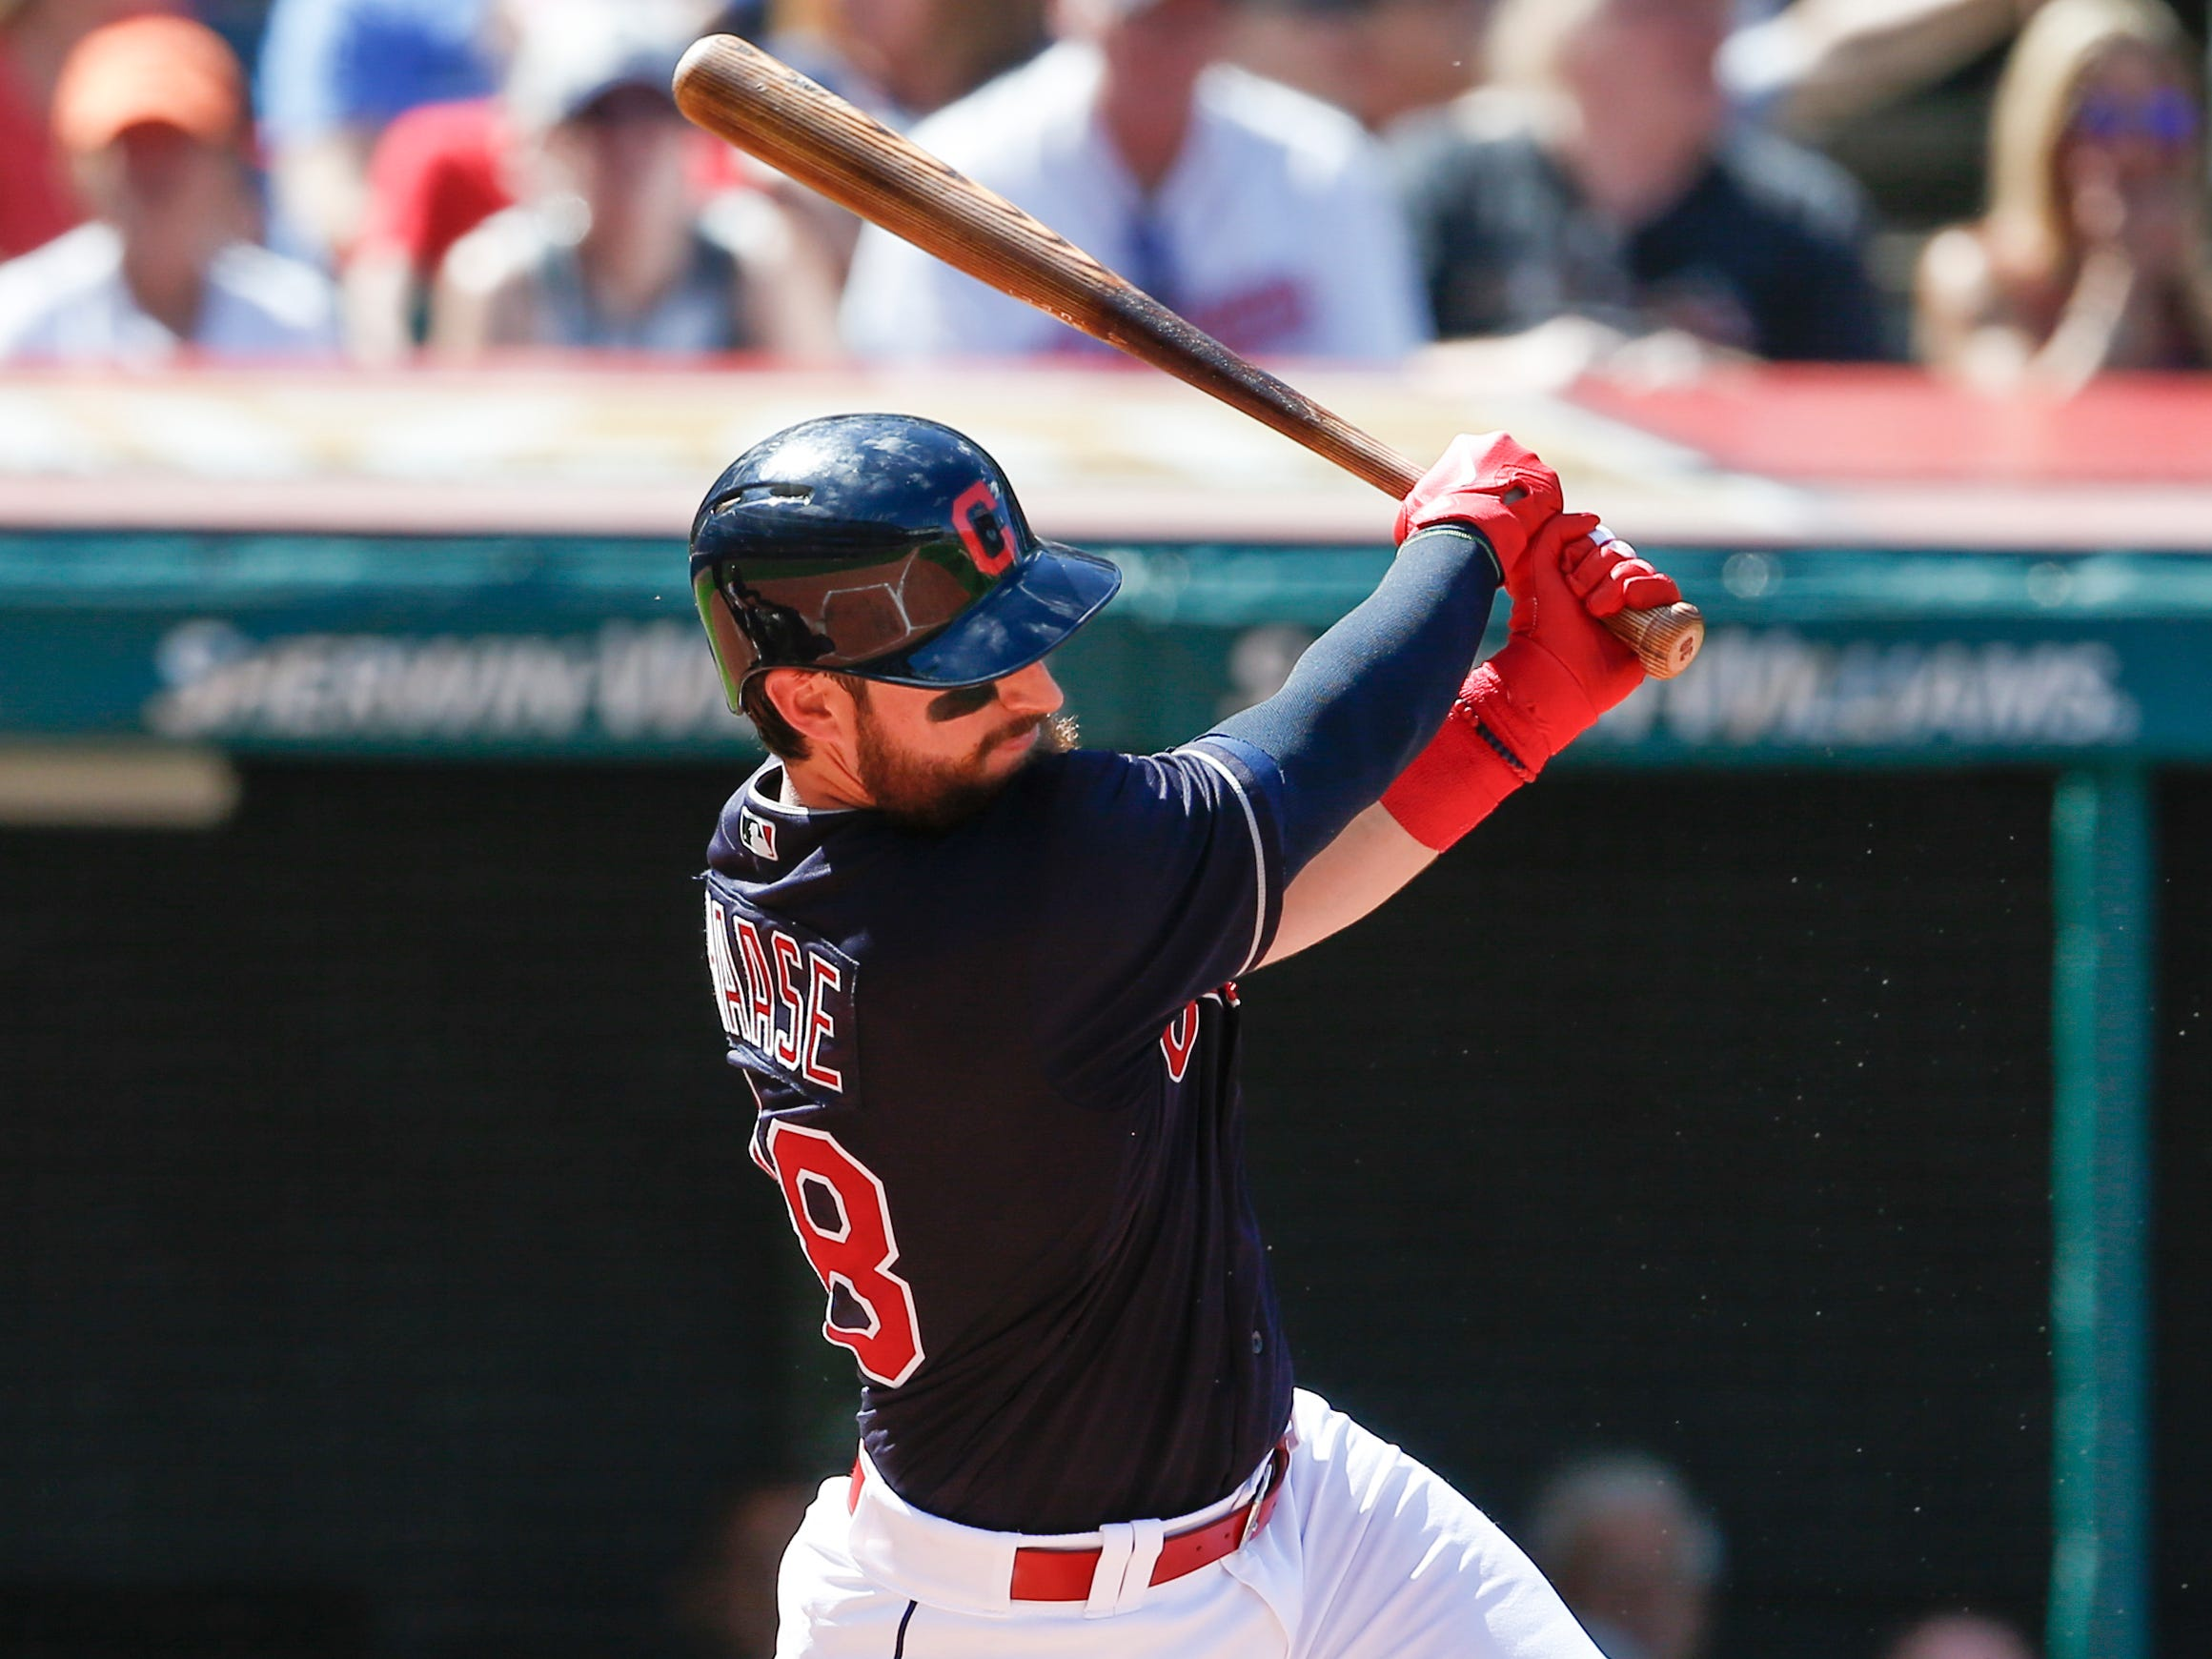 Cleveland Indians' Eric Haase hits an RBI single off Detroit Tigers starting pitcher Francisco Liriano during the fourth inning.